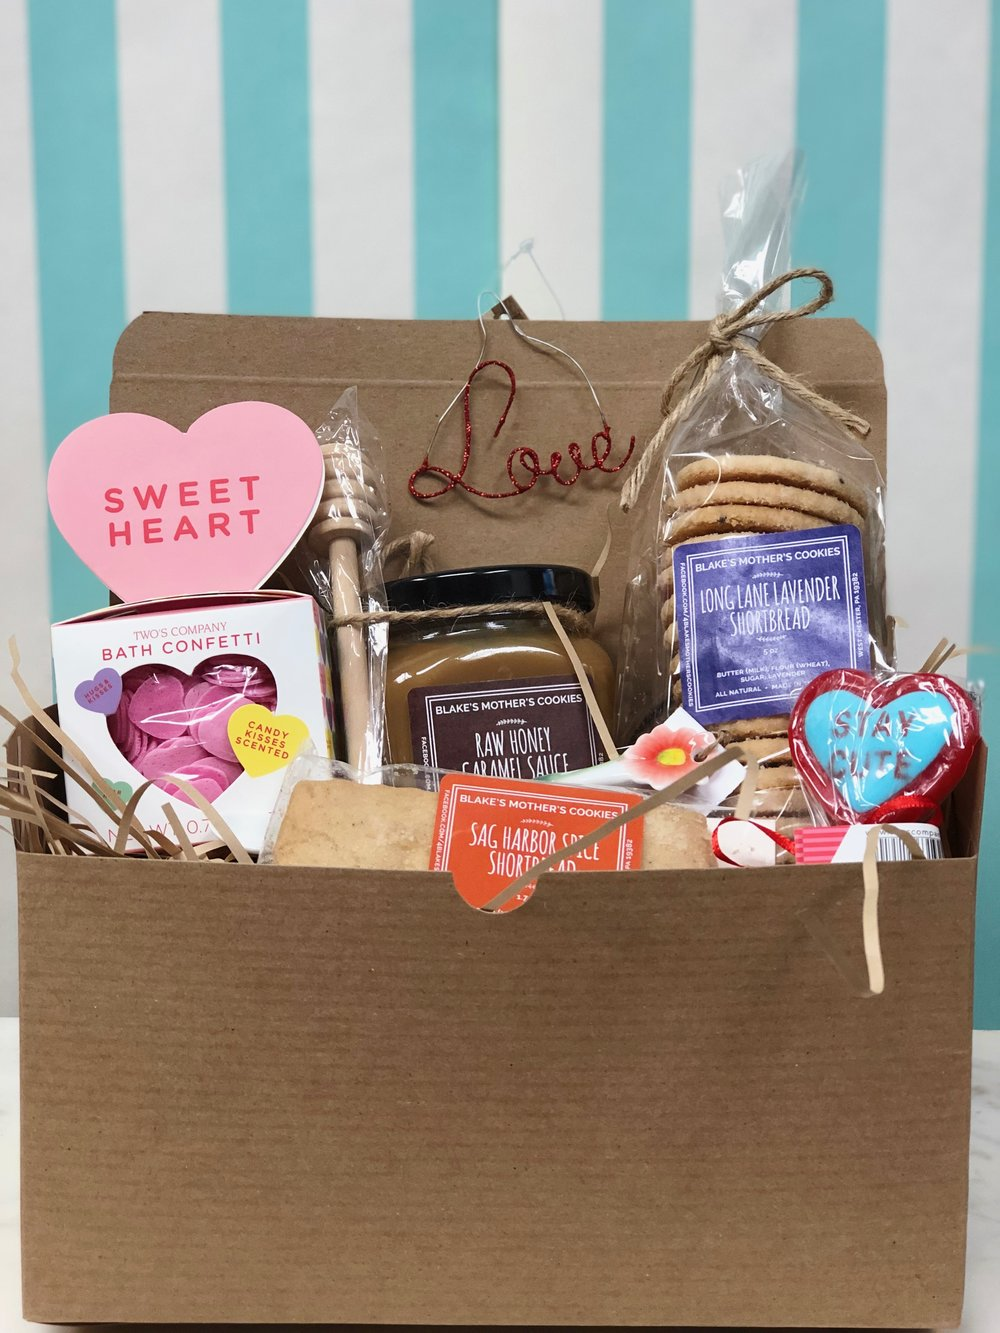 Large Box of Love- $59.99   Our large box is perfect for your sweetheart with a sweet tooth. Filled with homemade confections from Blake's Mother's Cookies and bath confetti.